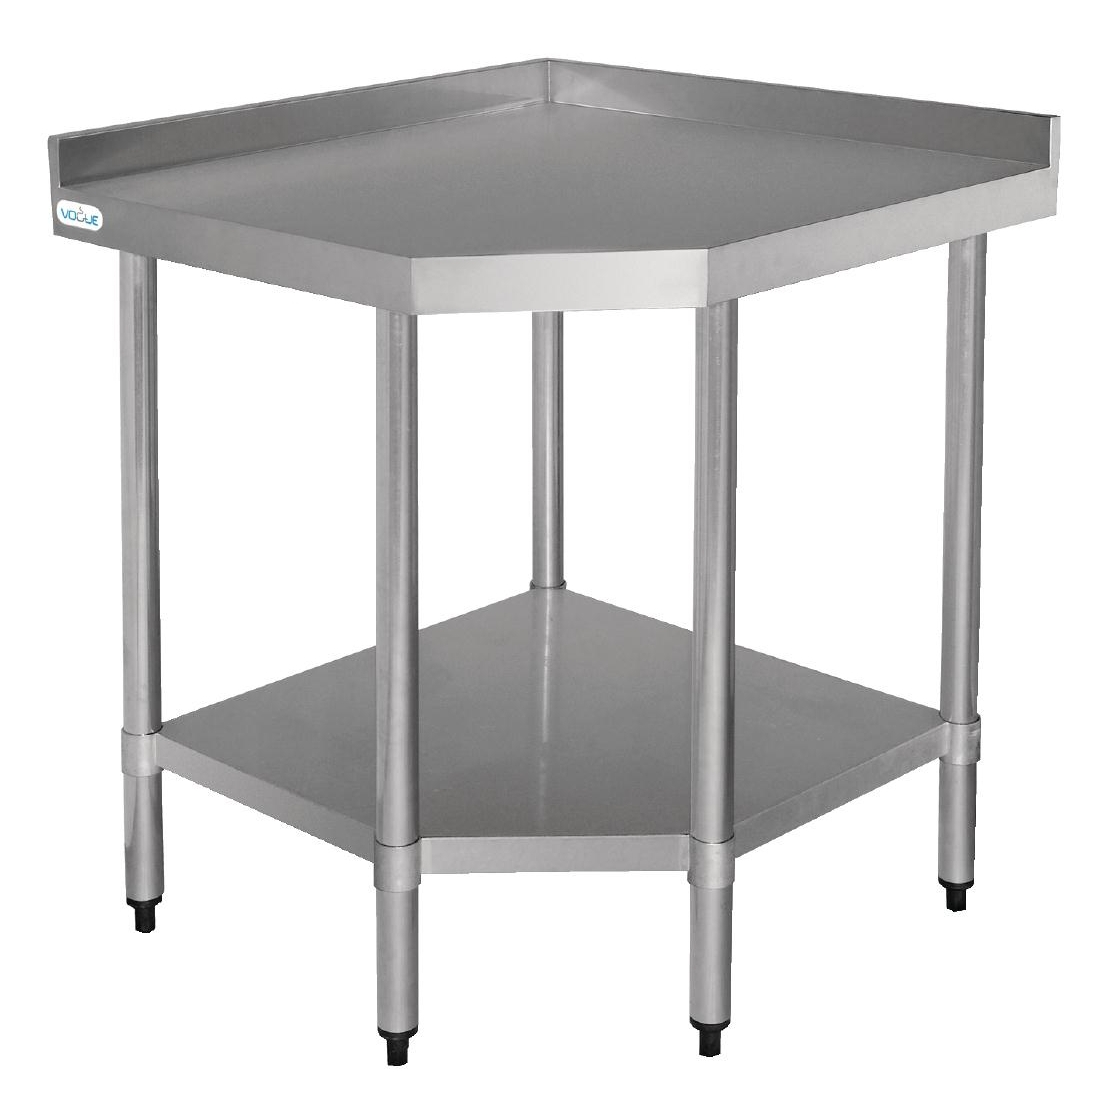 Vogue Stainless Steel Corner Table 600mm